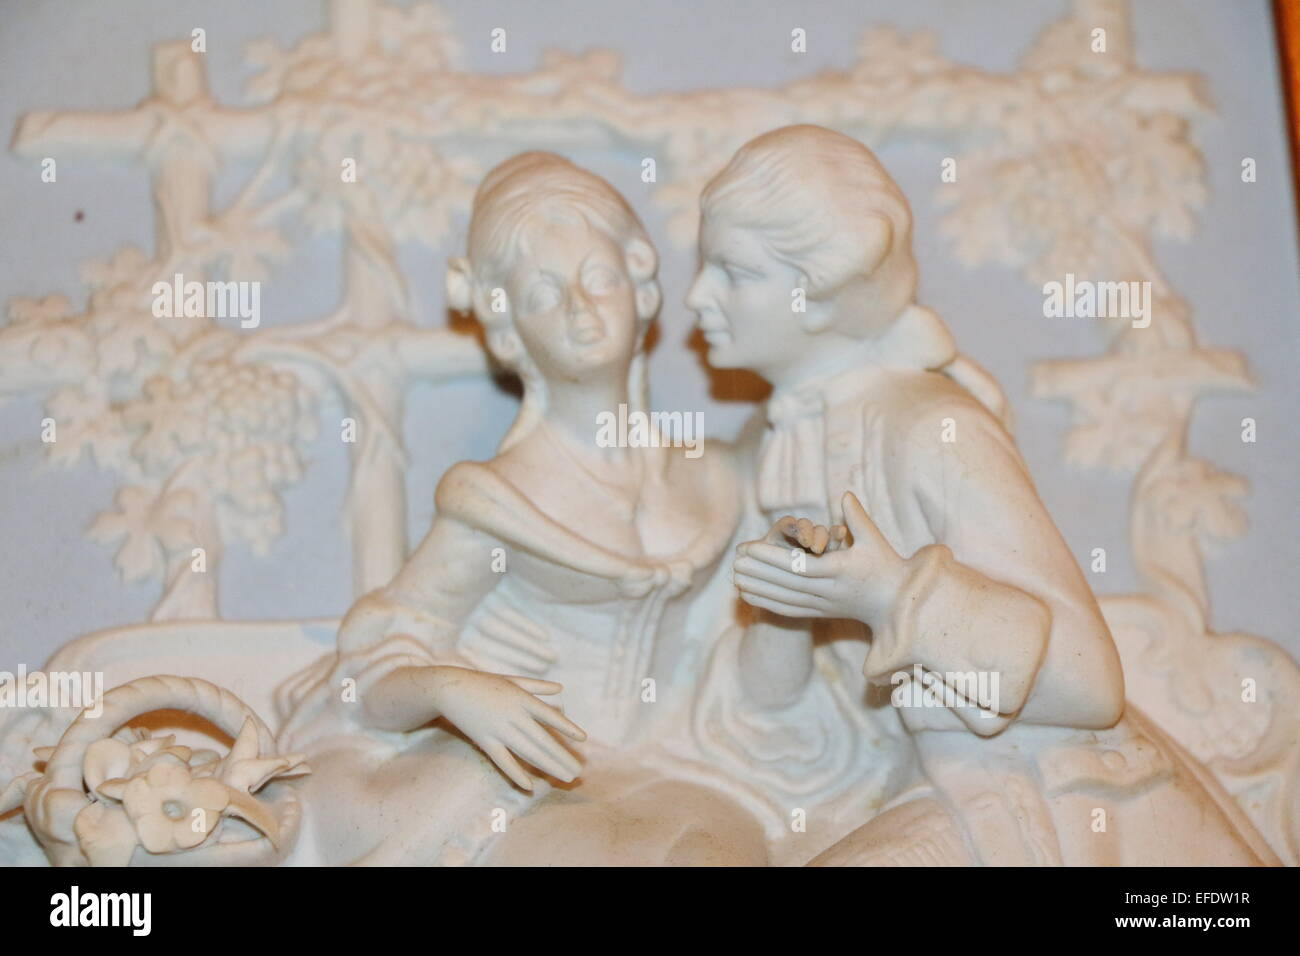 man and woman courting scene, French lovers,man and woman on bench,lovers on bench,man takes womans hand - Stock Image